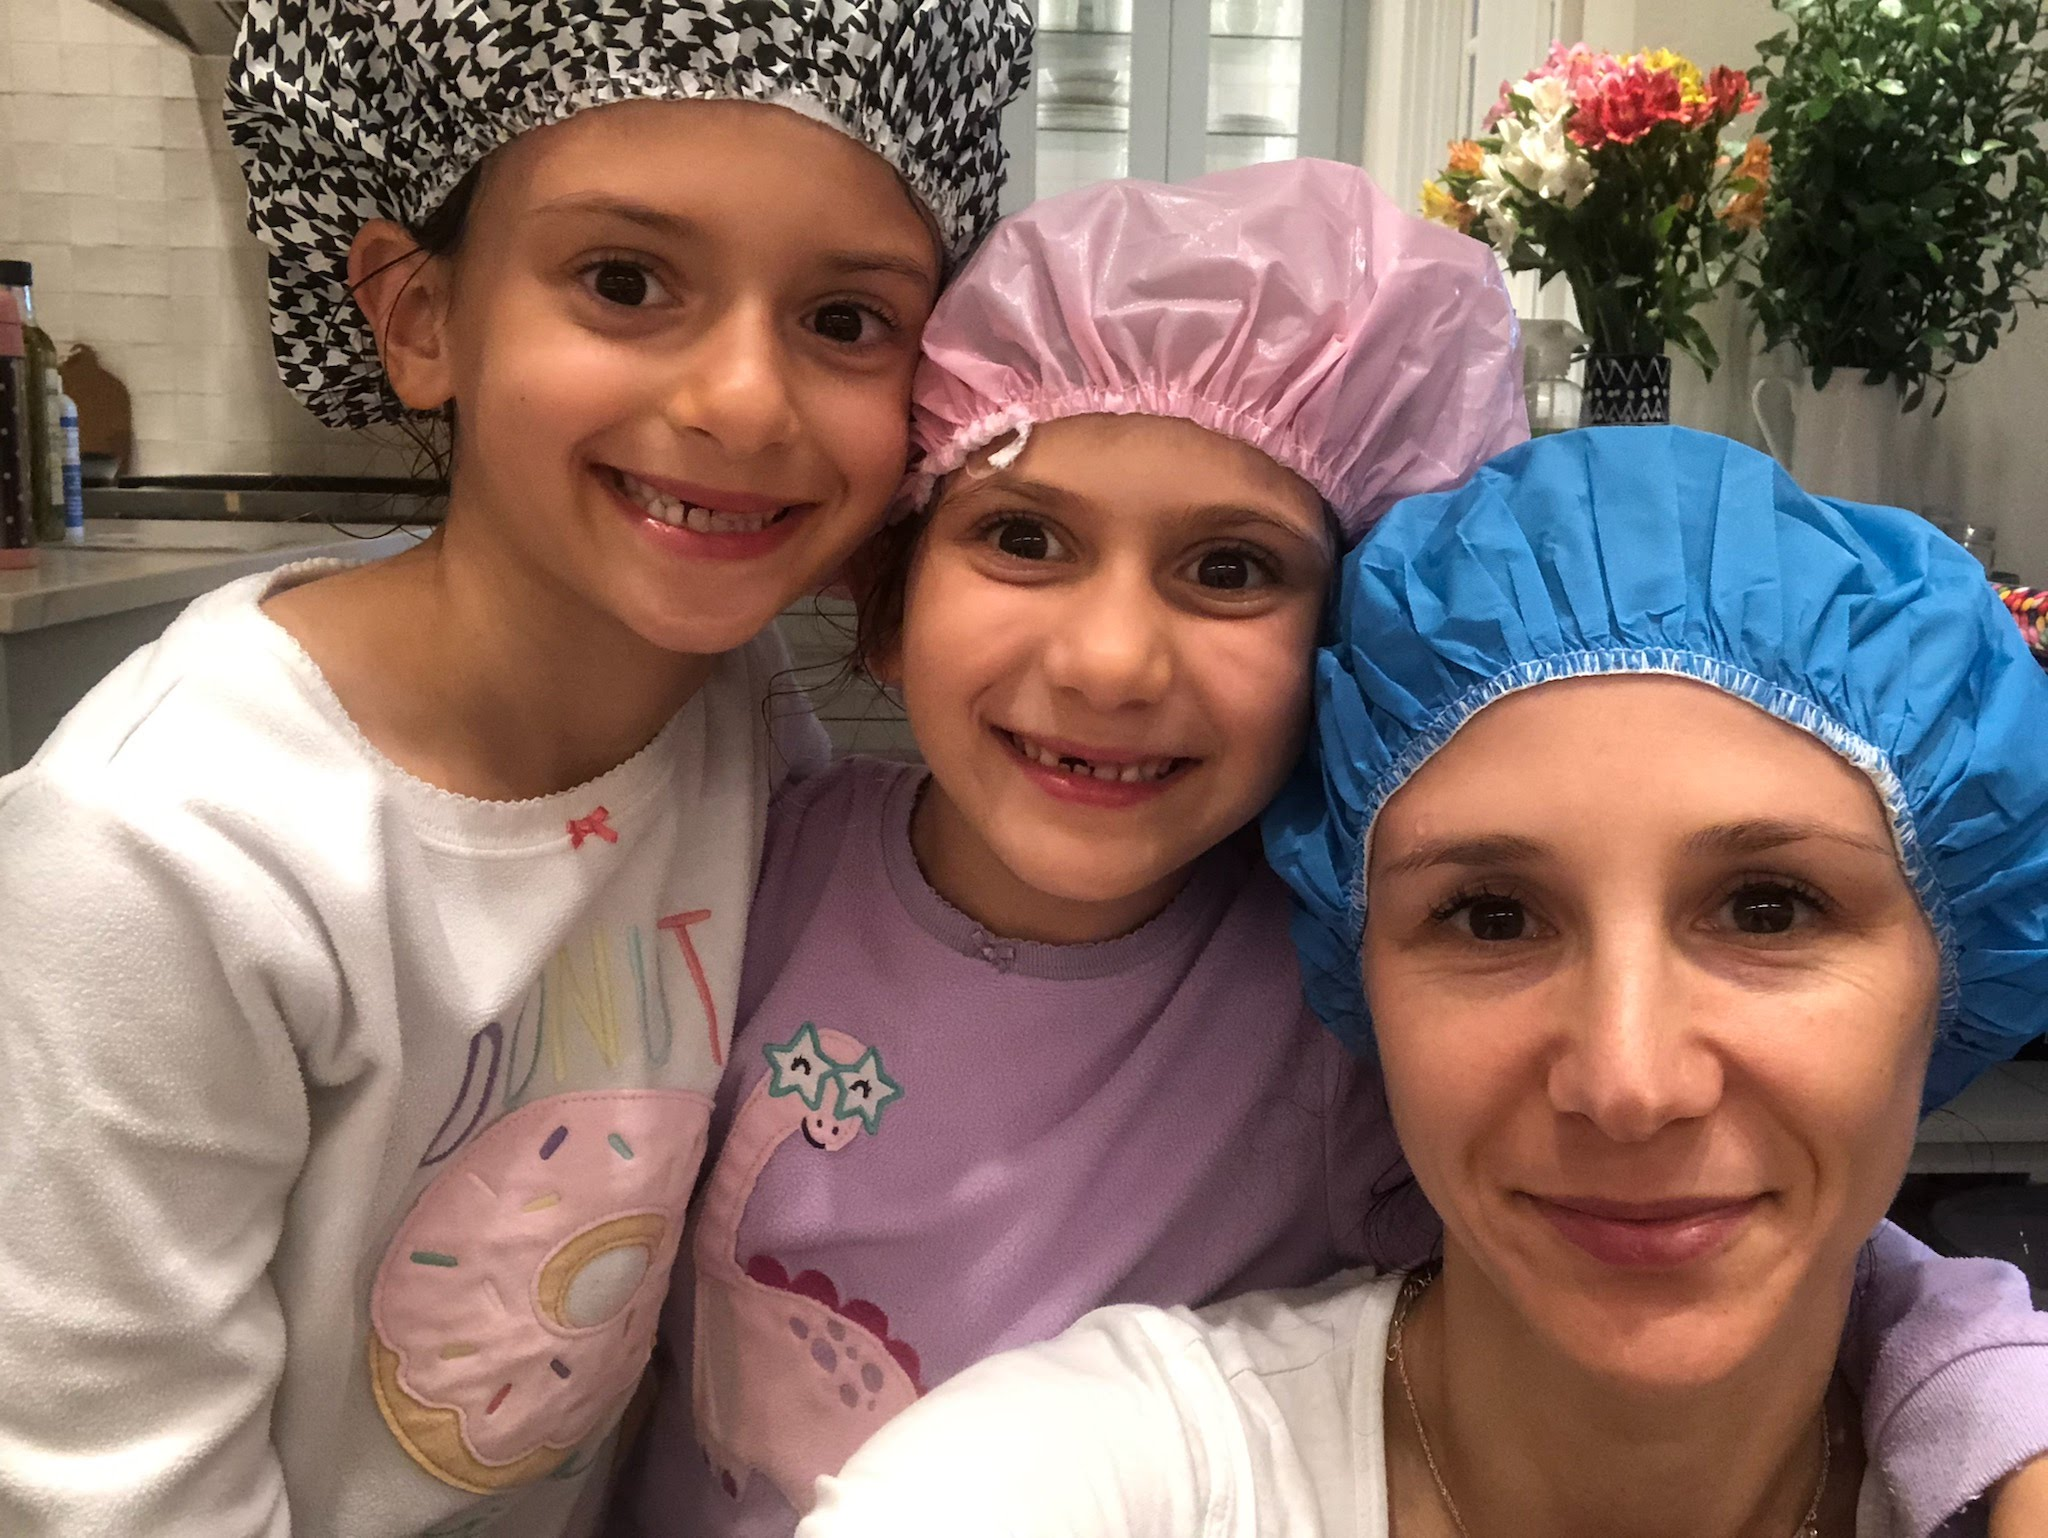 LiceDoctors Technician taking head-to-head selfie with two smiling little girls, all wearing shower caps.